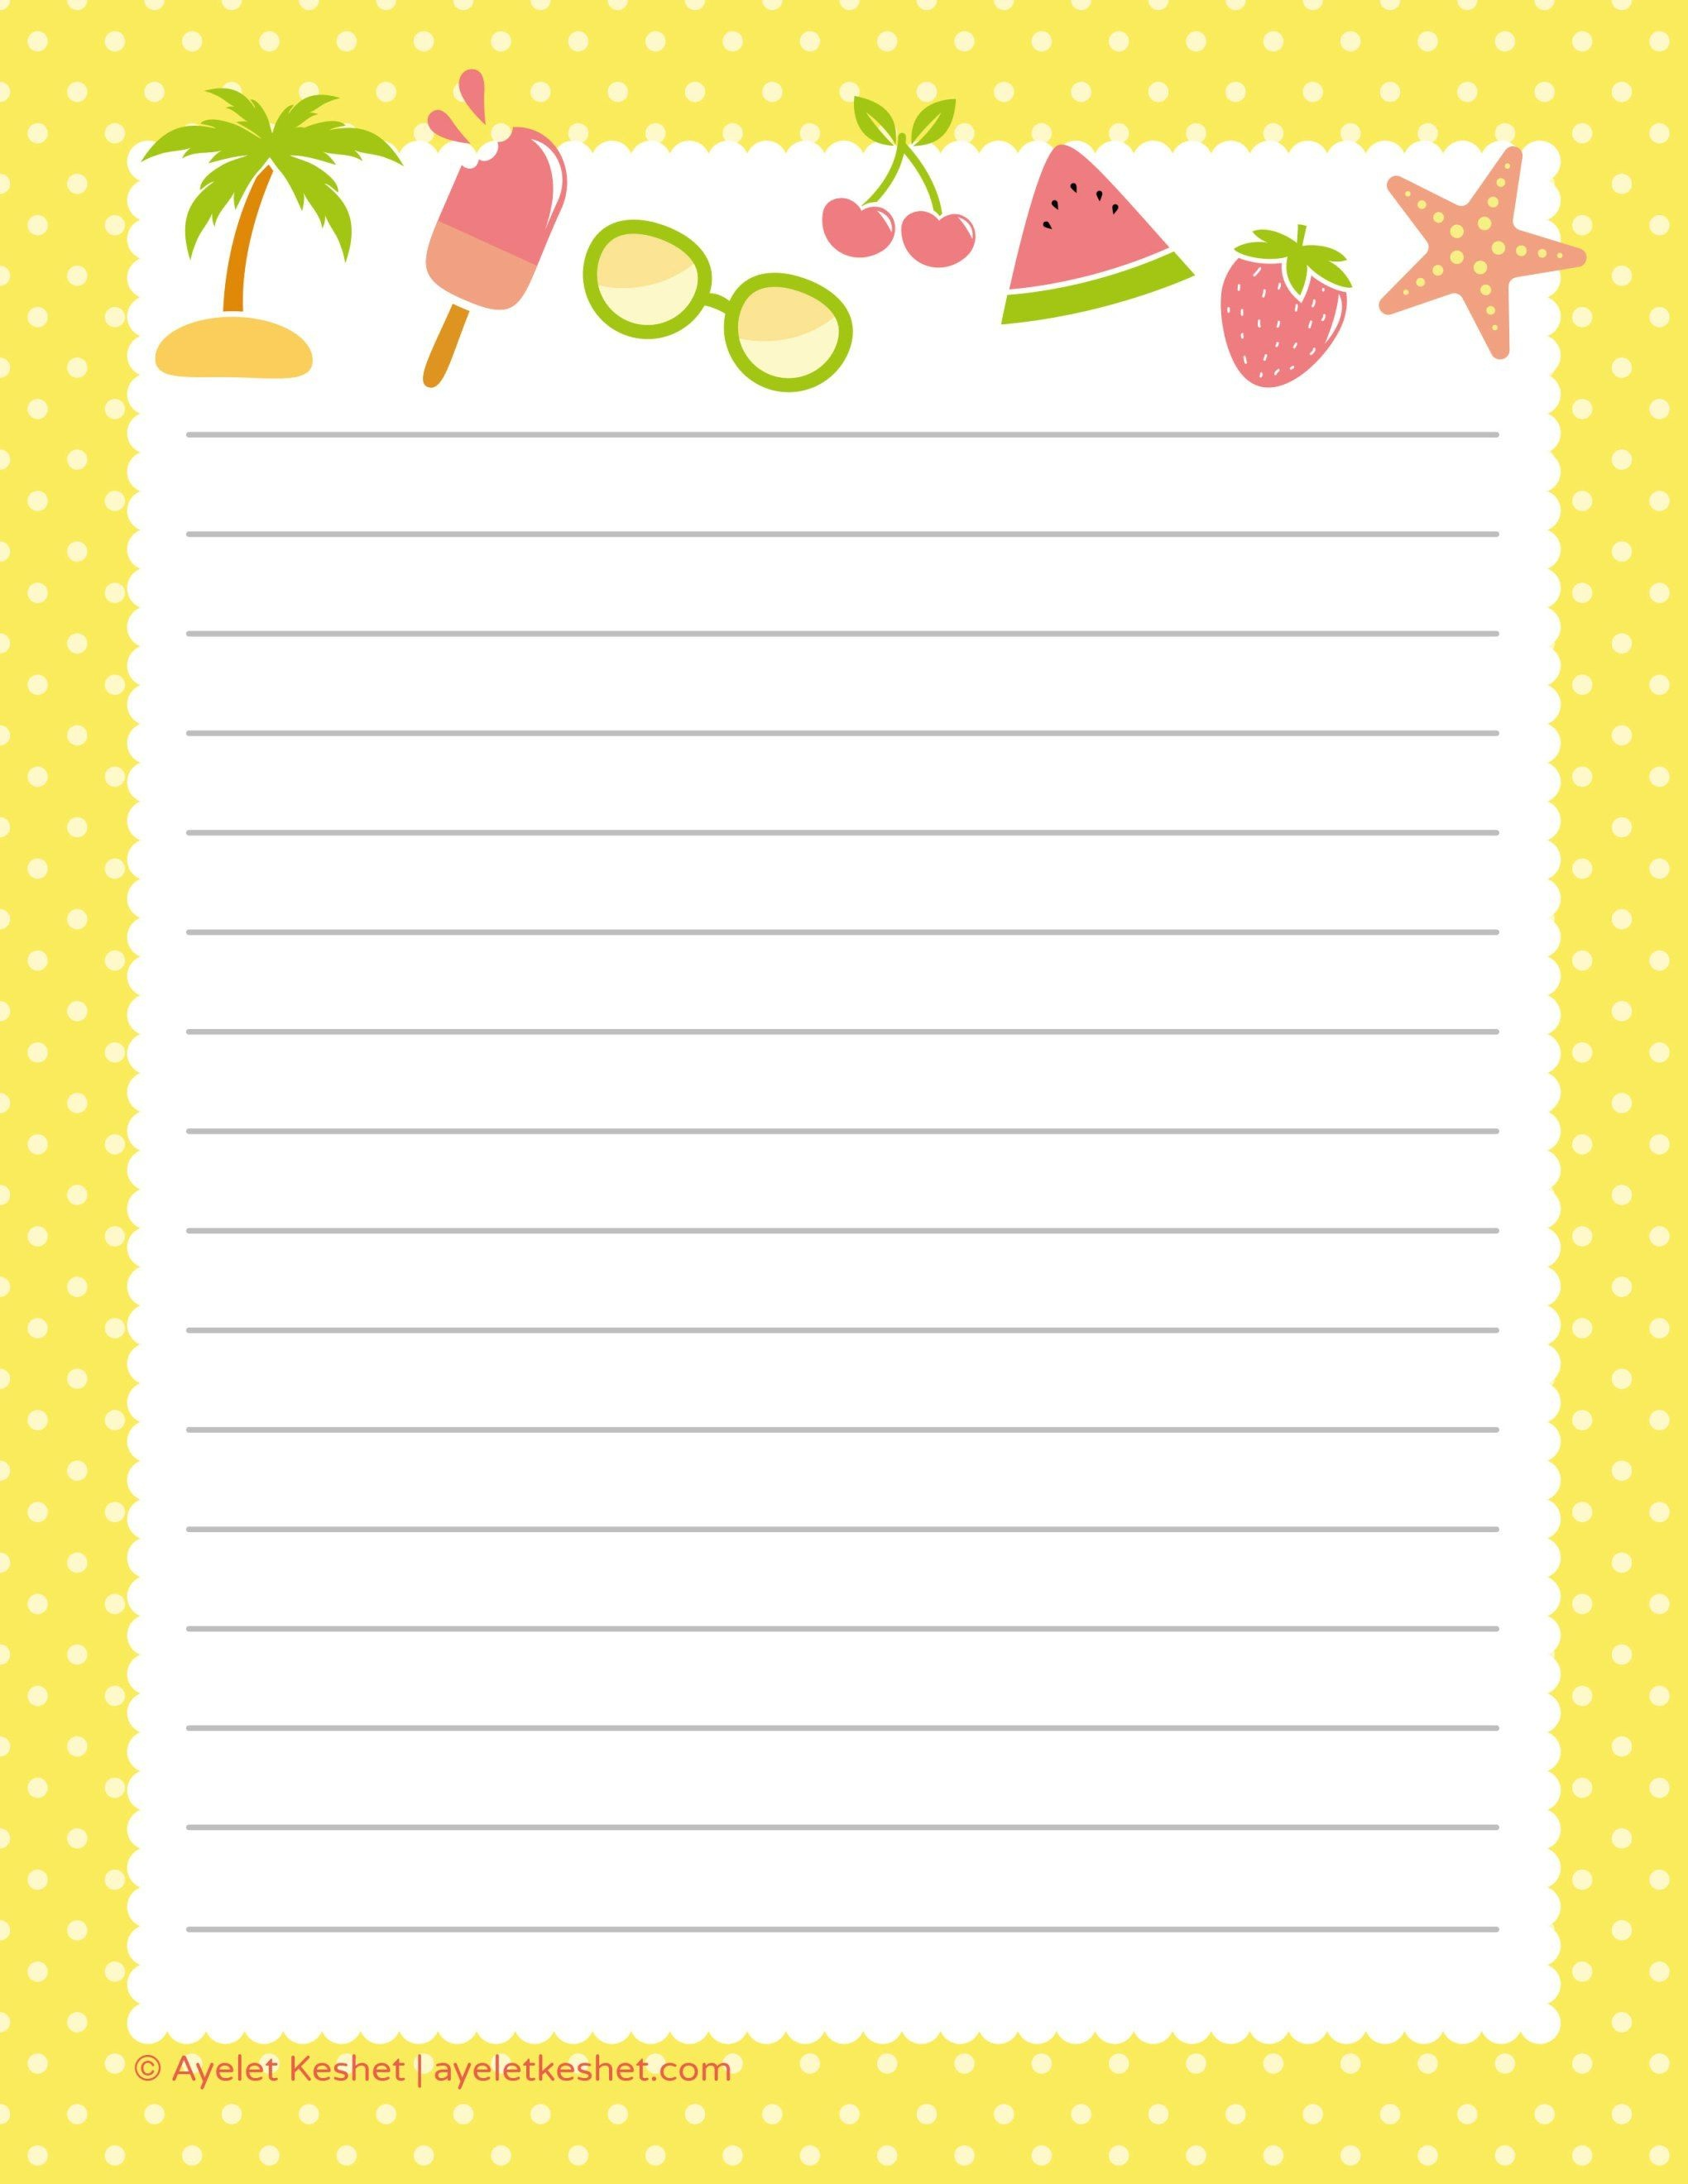 Free Printable Letter Paper | Printables To Go | Free Printable - Free Printable Stationary Pdf